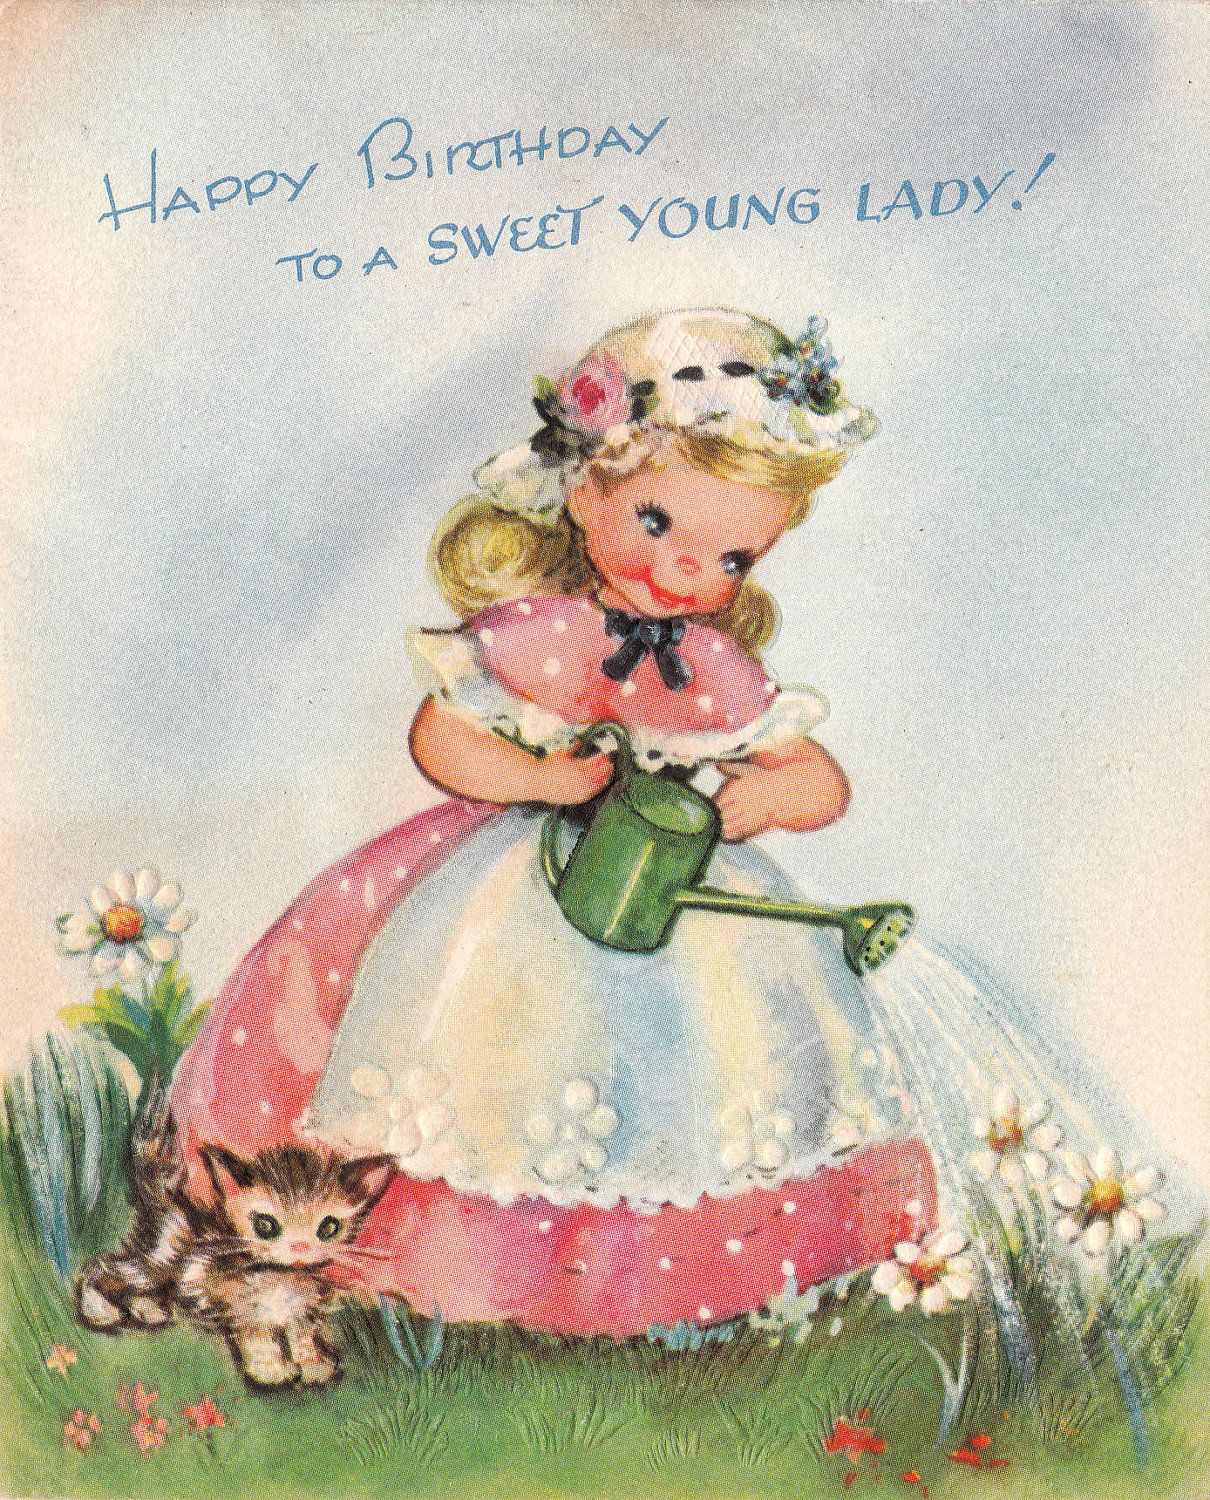 Vintage 1940s Happy Birthday To A Sweet Young Lady Greetings Card